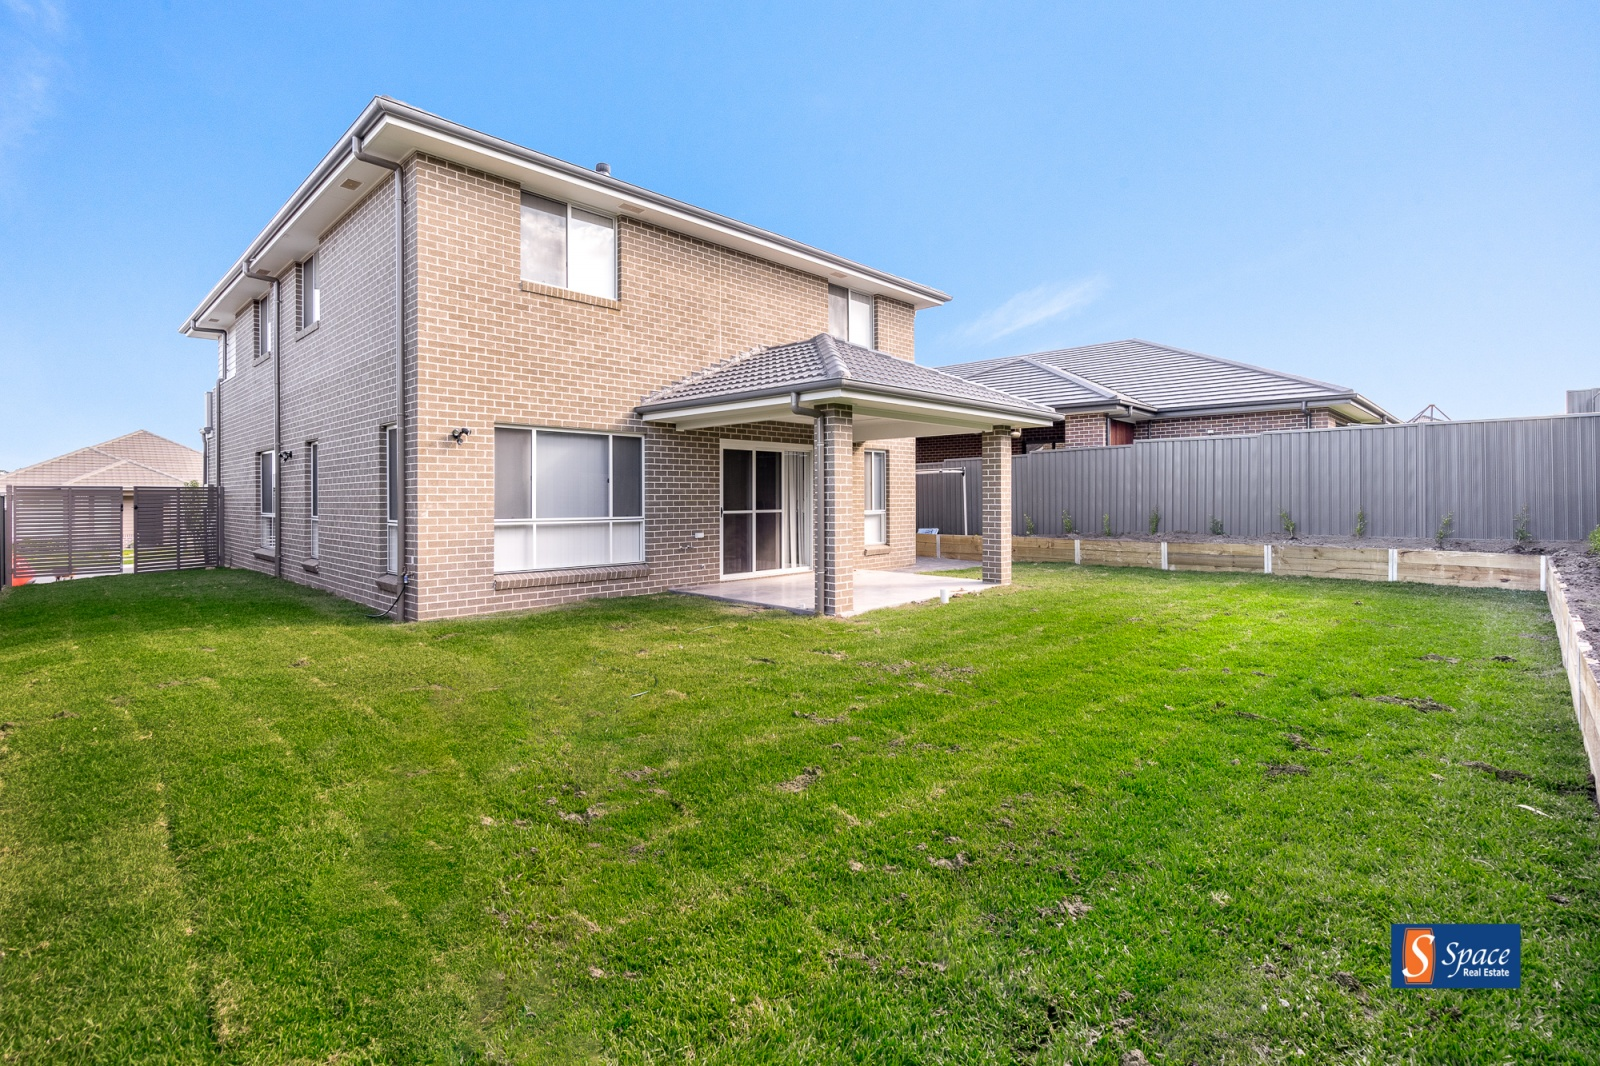 11 Rawlings Street,Oran Park,NSW,5 Bedrooms Bedrooms,3 BathroomsBathrooms,House,Rawlings Street,1365